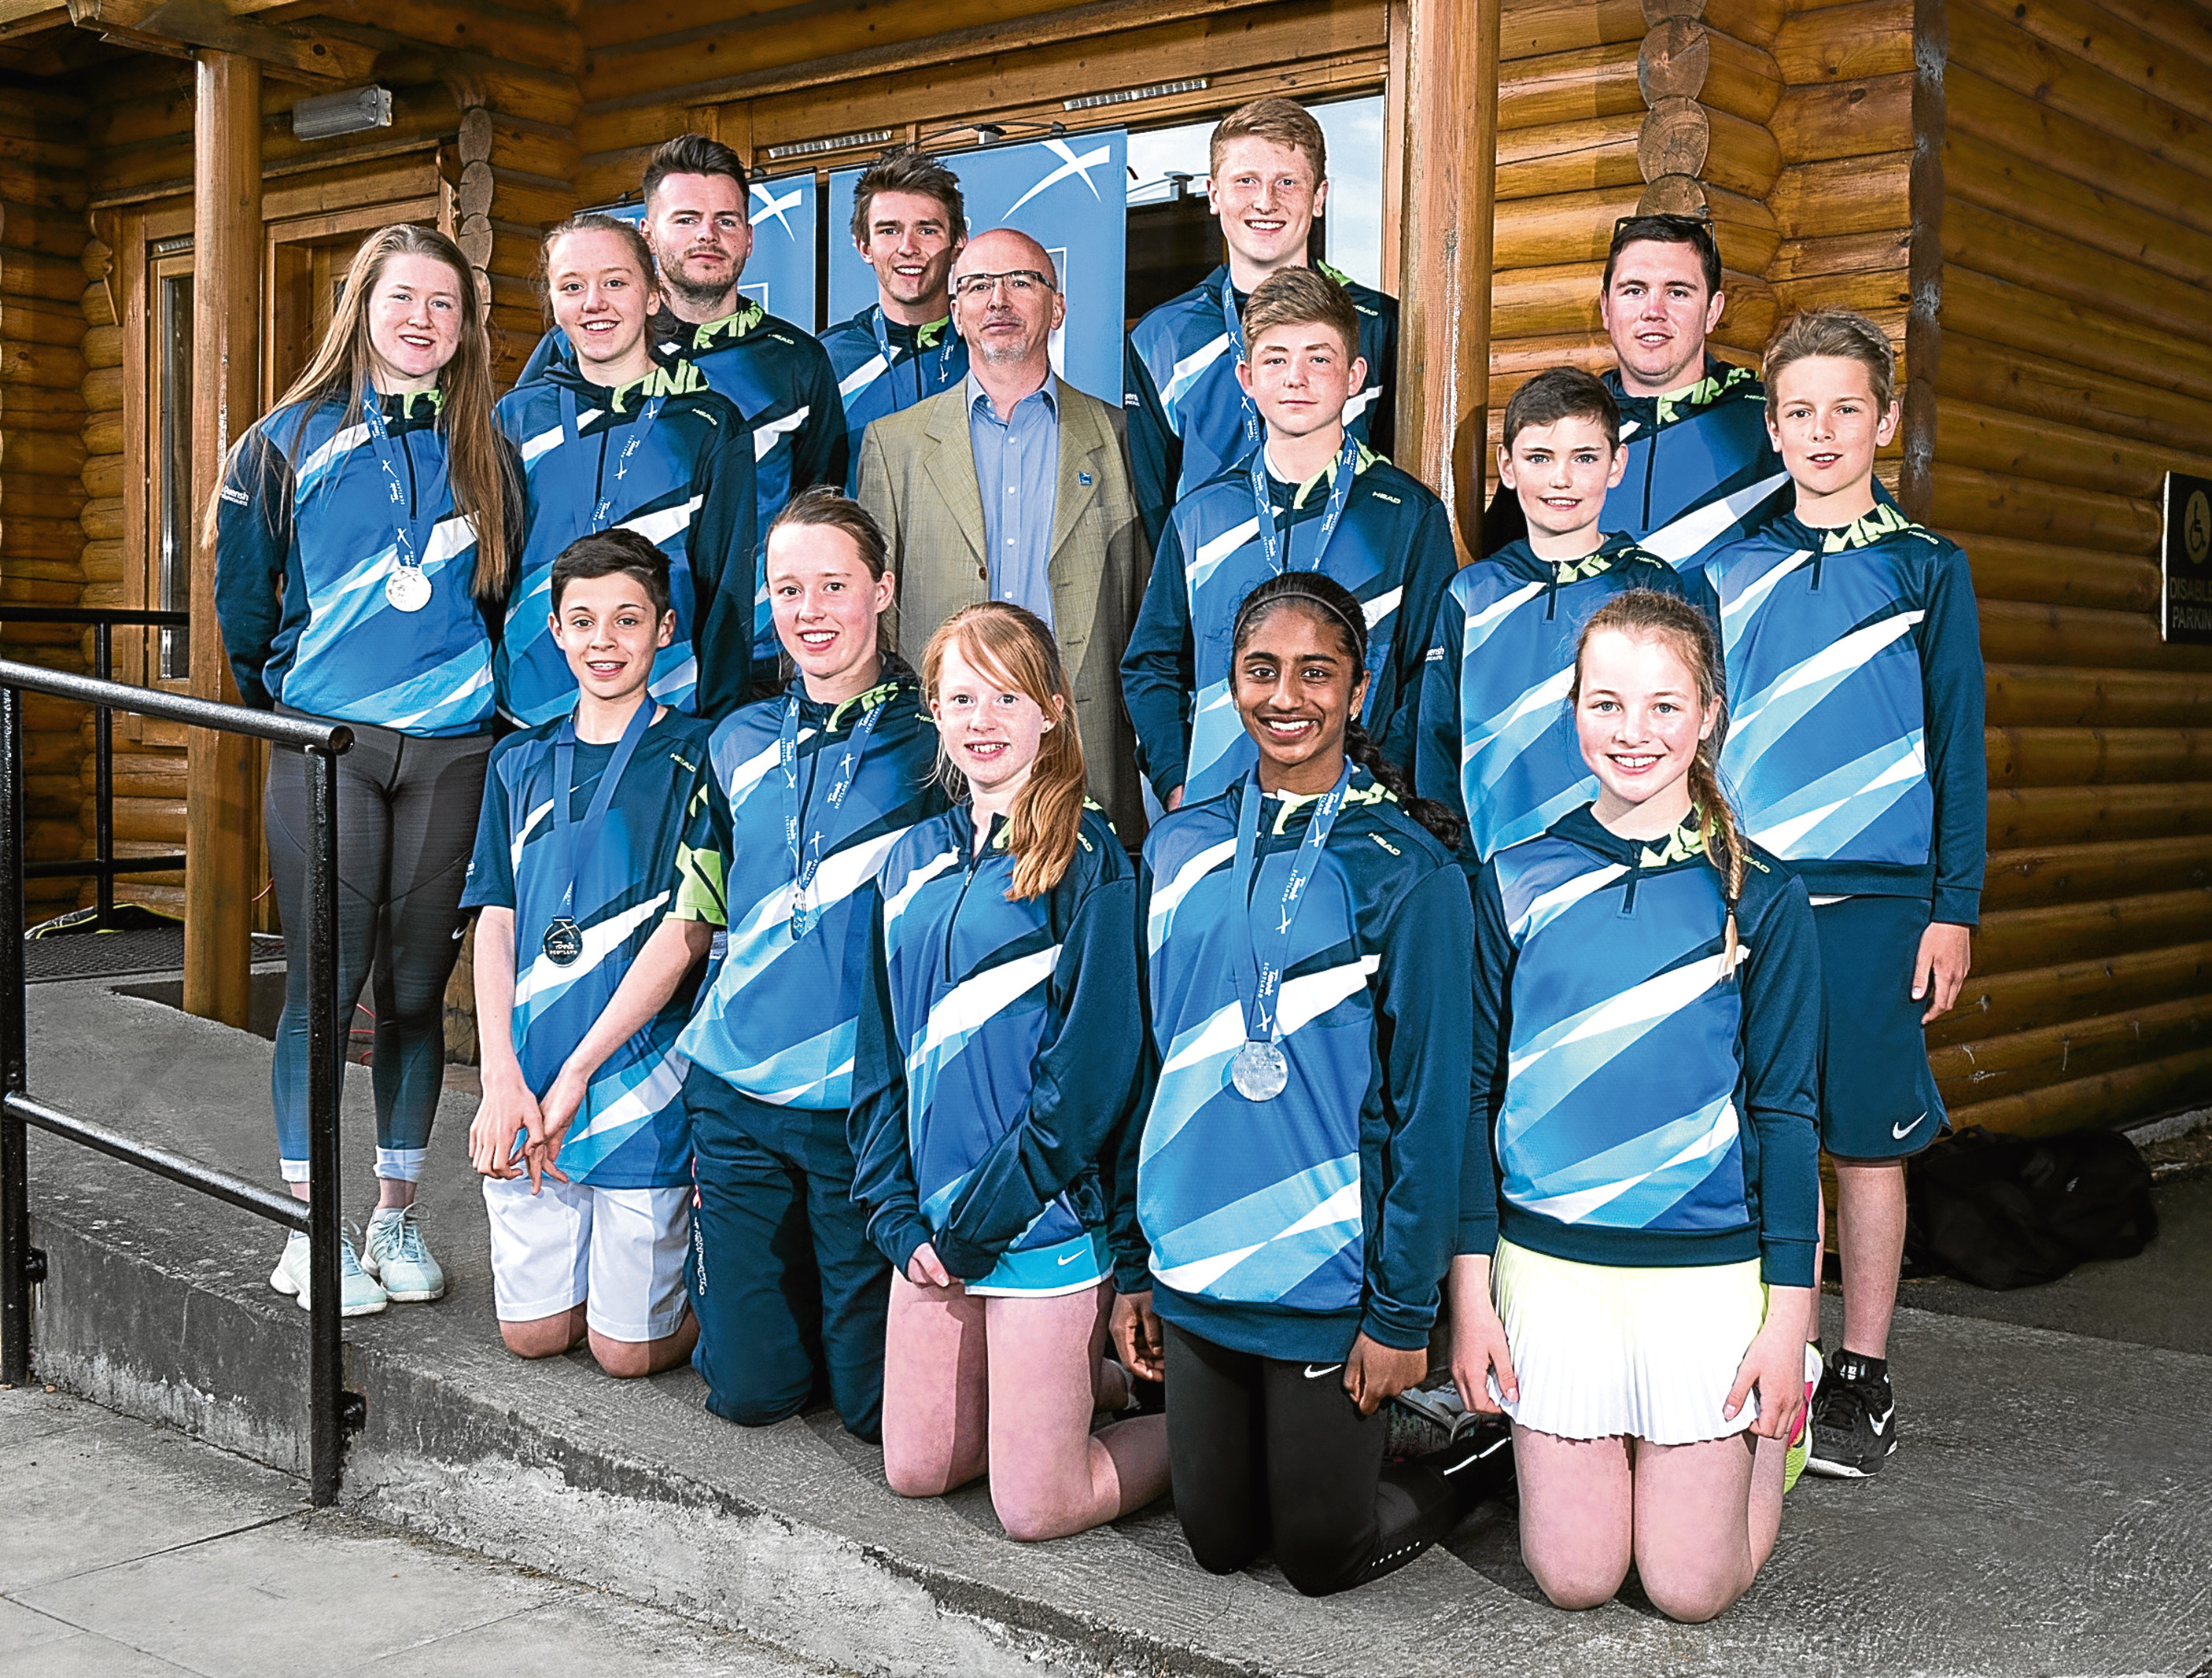 The North-east Scotland Lawn Tennis Association inter-district team,. Pictured in the middle is Andrew Hawke, president of Tennis Scotland,  and team captain Matthew Kerswell, pictured back right.